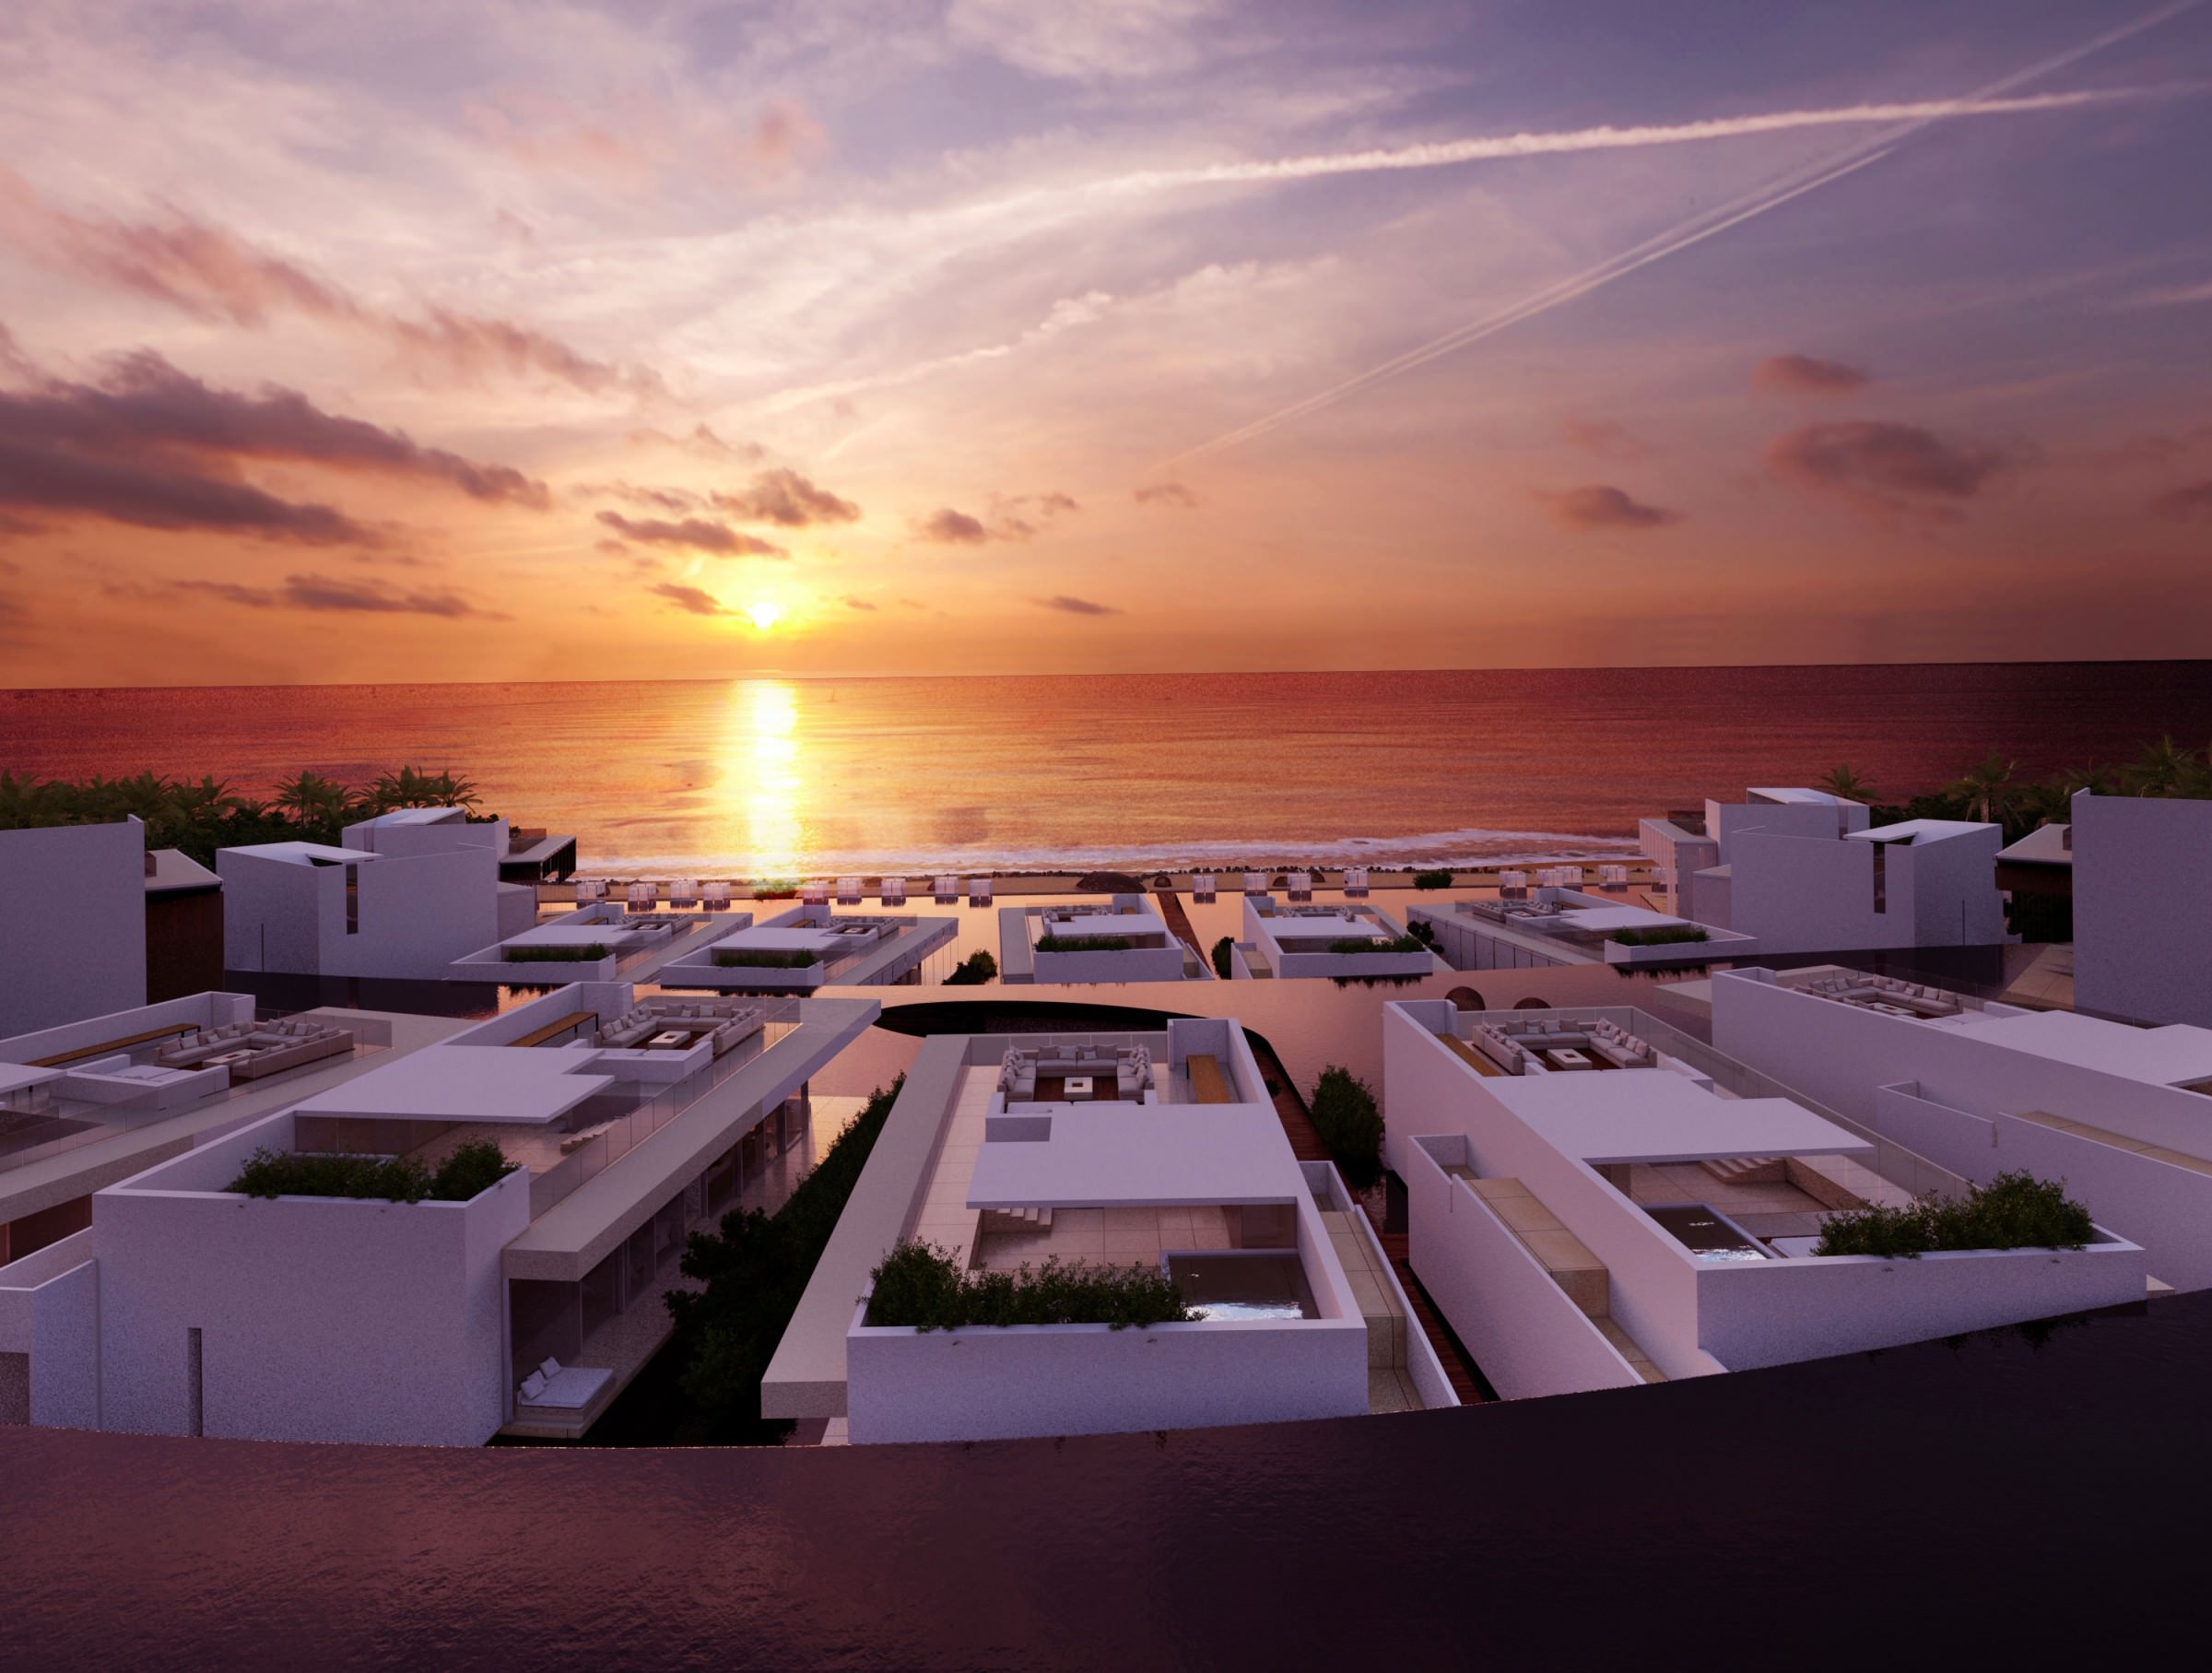 Gallery   Hotel Mar Adentro   Sunset